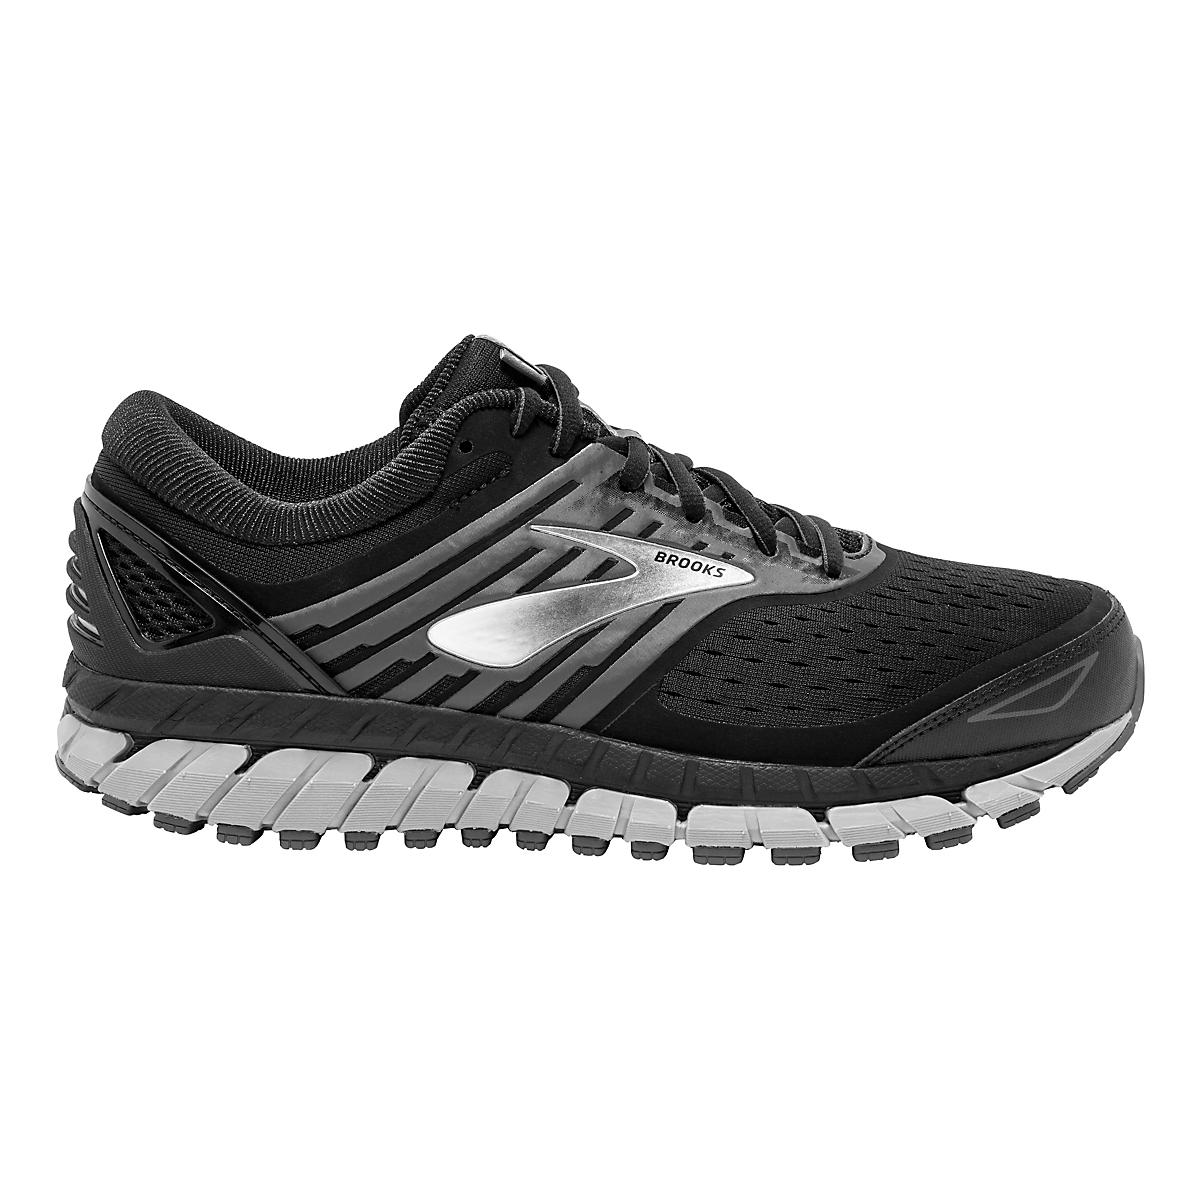 82dcd6edcebb0 Men s Brooks Beast 18 Running Shoes for Sale